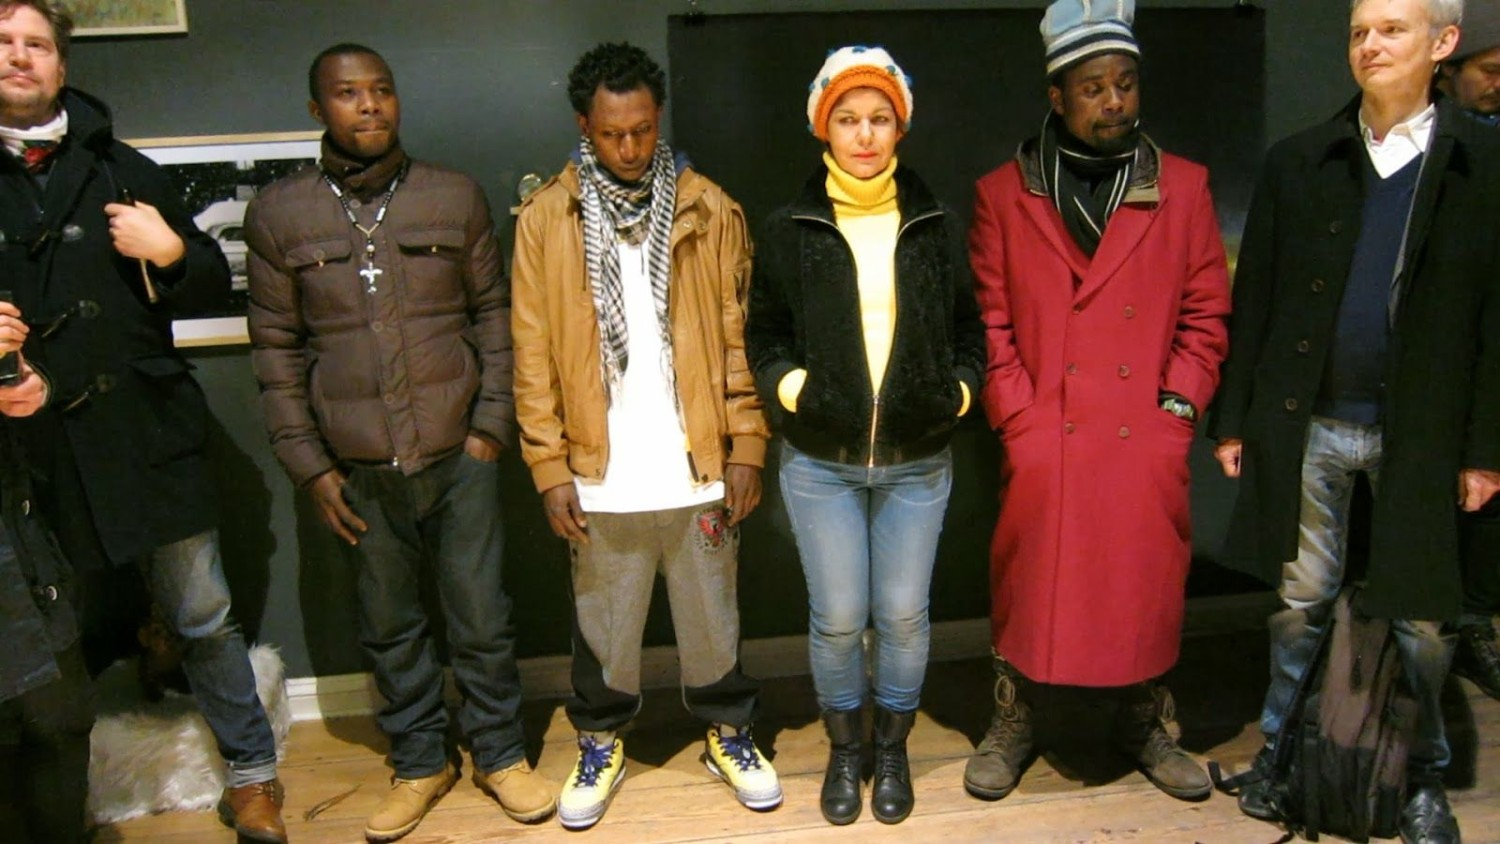 Liuba together with refugees in Berlin.